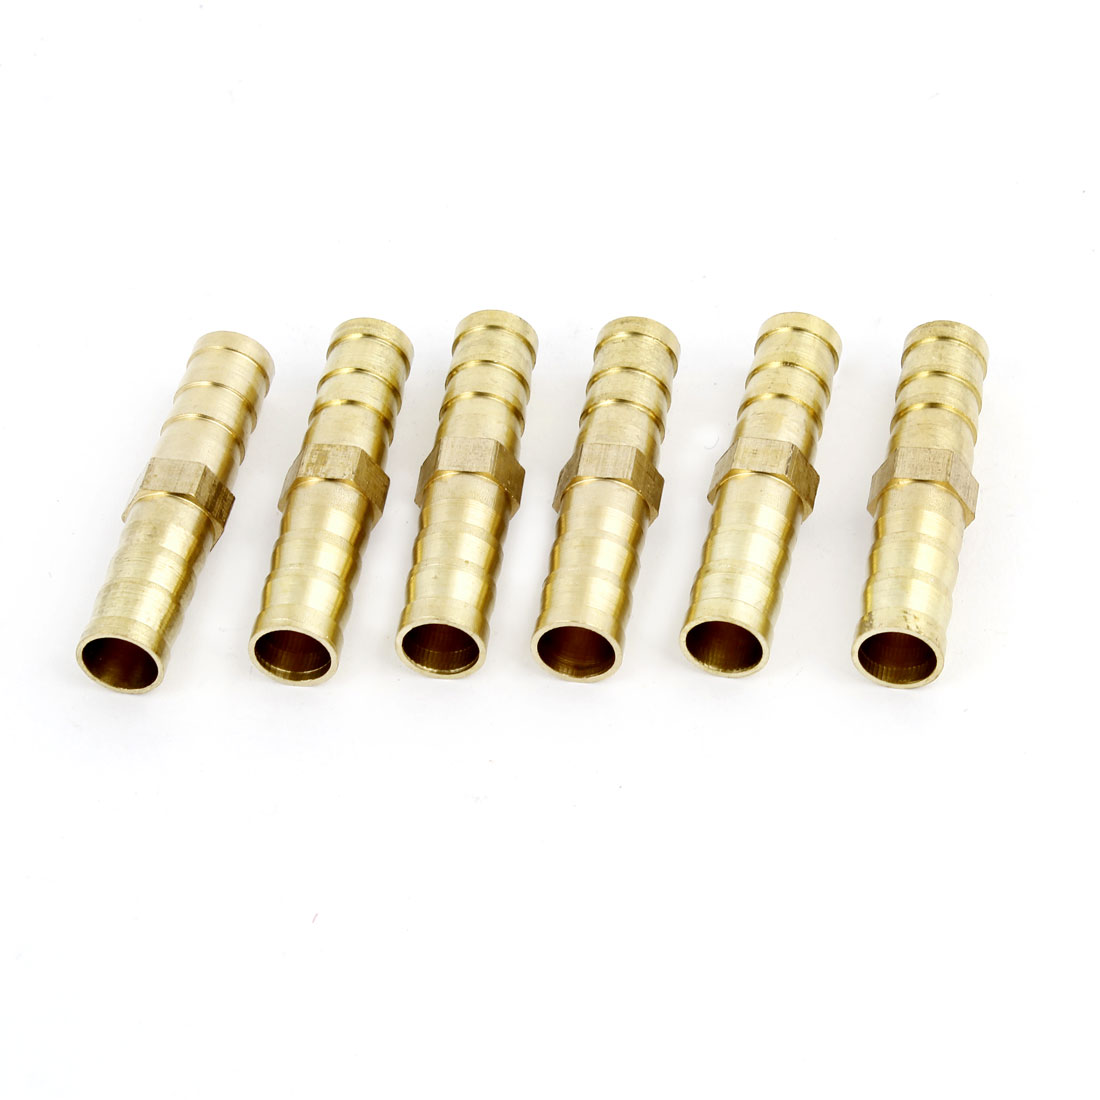 6 Pcs Gold Tone 8mm Dia Pneumatic Air Tubing Piping Hose Quick Fittings Straight Coupler Barb Barbed Adapter